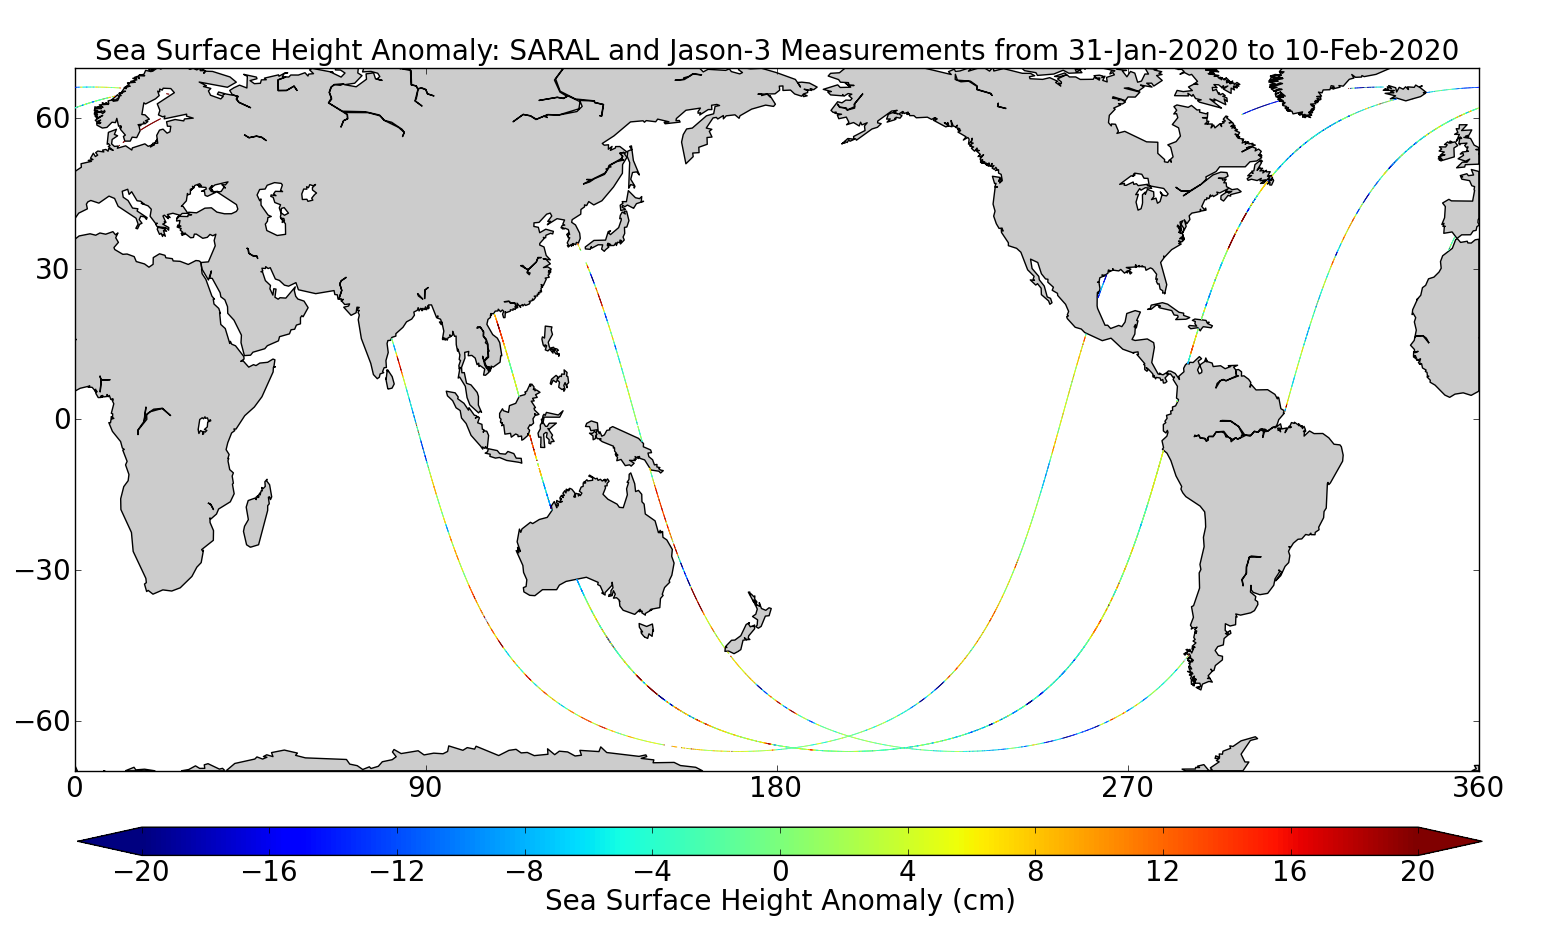 Sea Surface Height Anomaly: SARAL and Jason-3 Measurements from 31-Jan-2020 to 10-Feb-2020